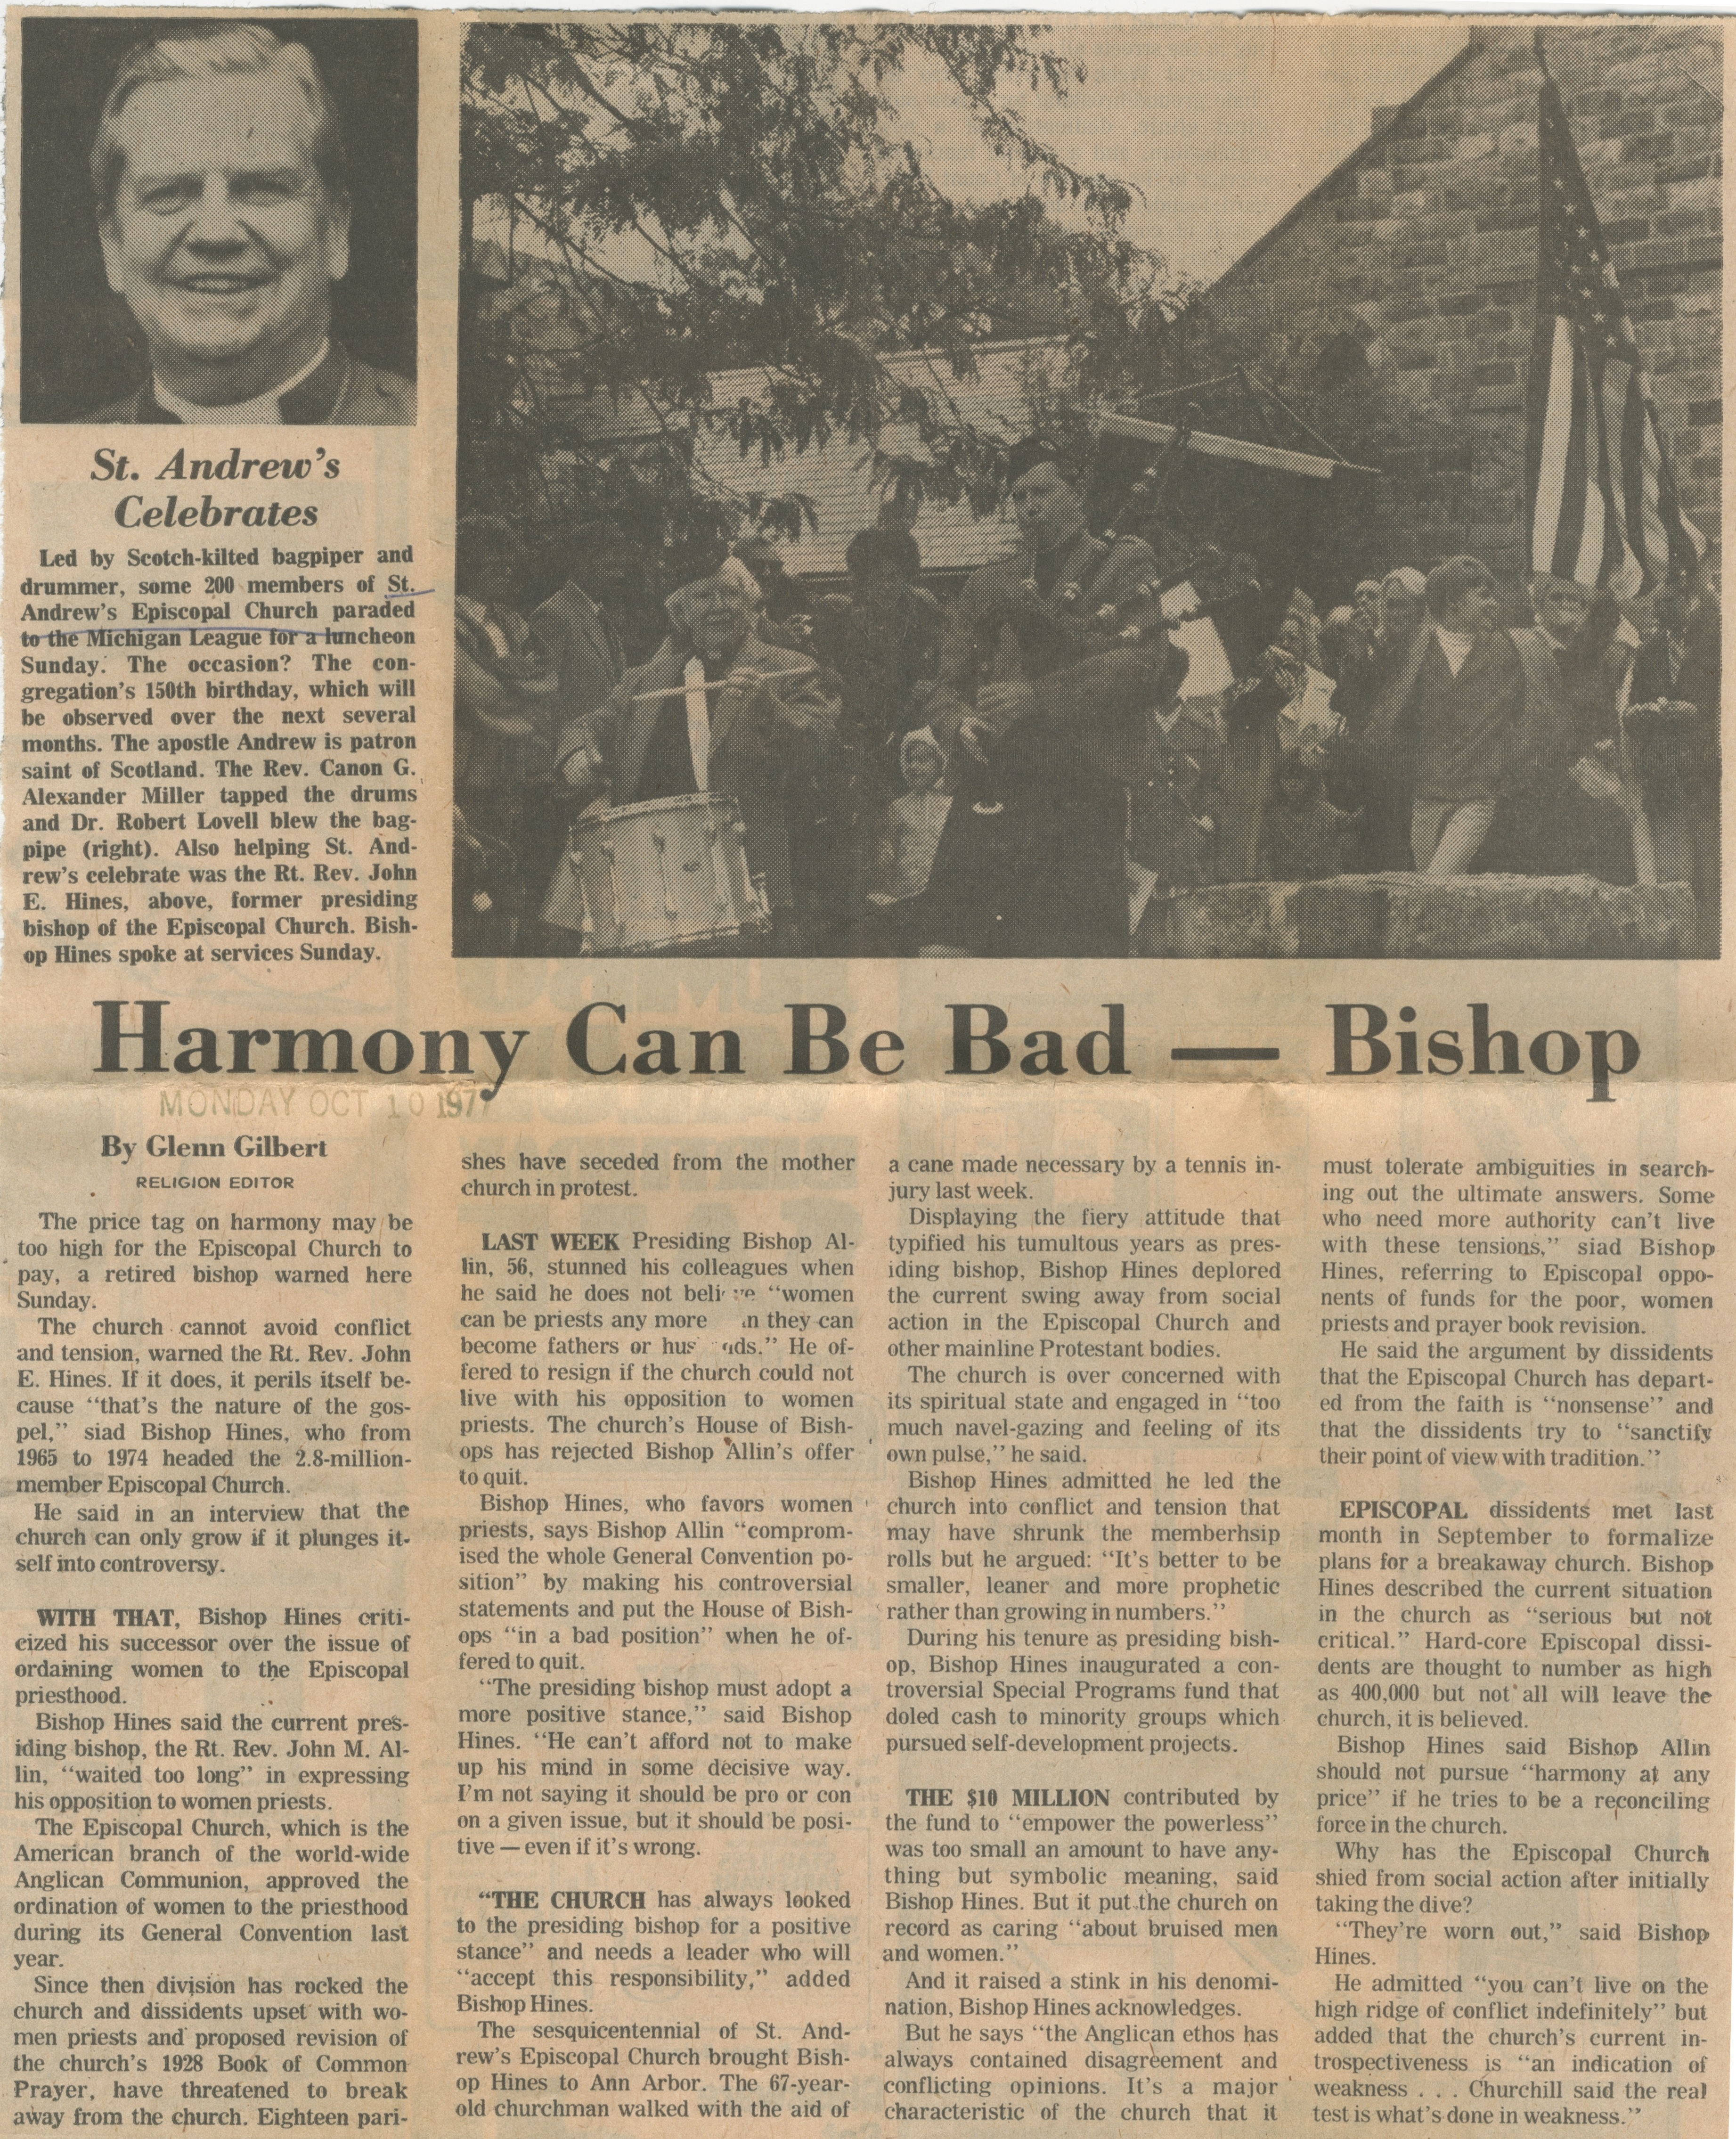 Harmony Can Be Bad -- Bishop image